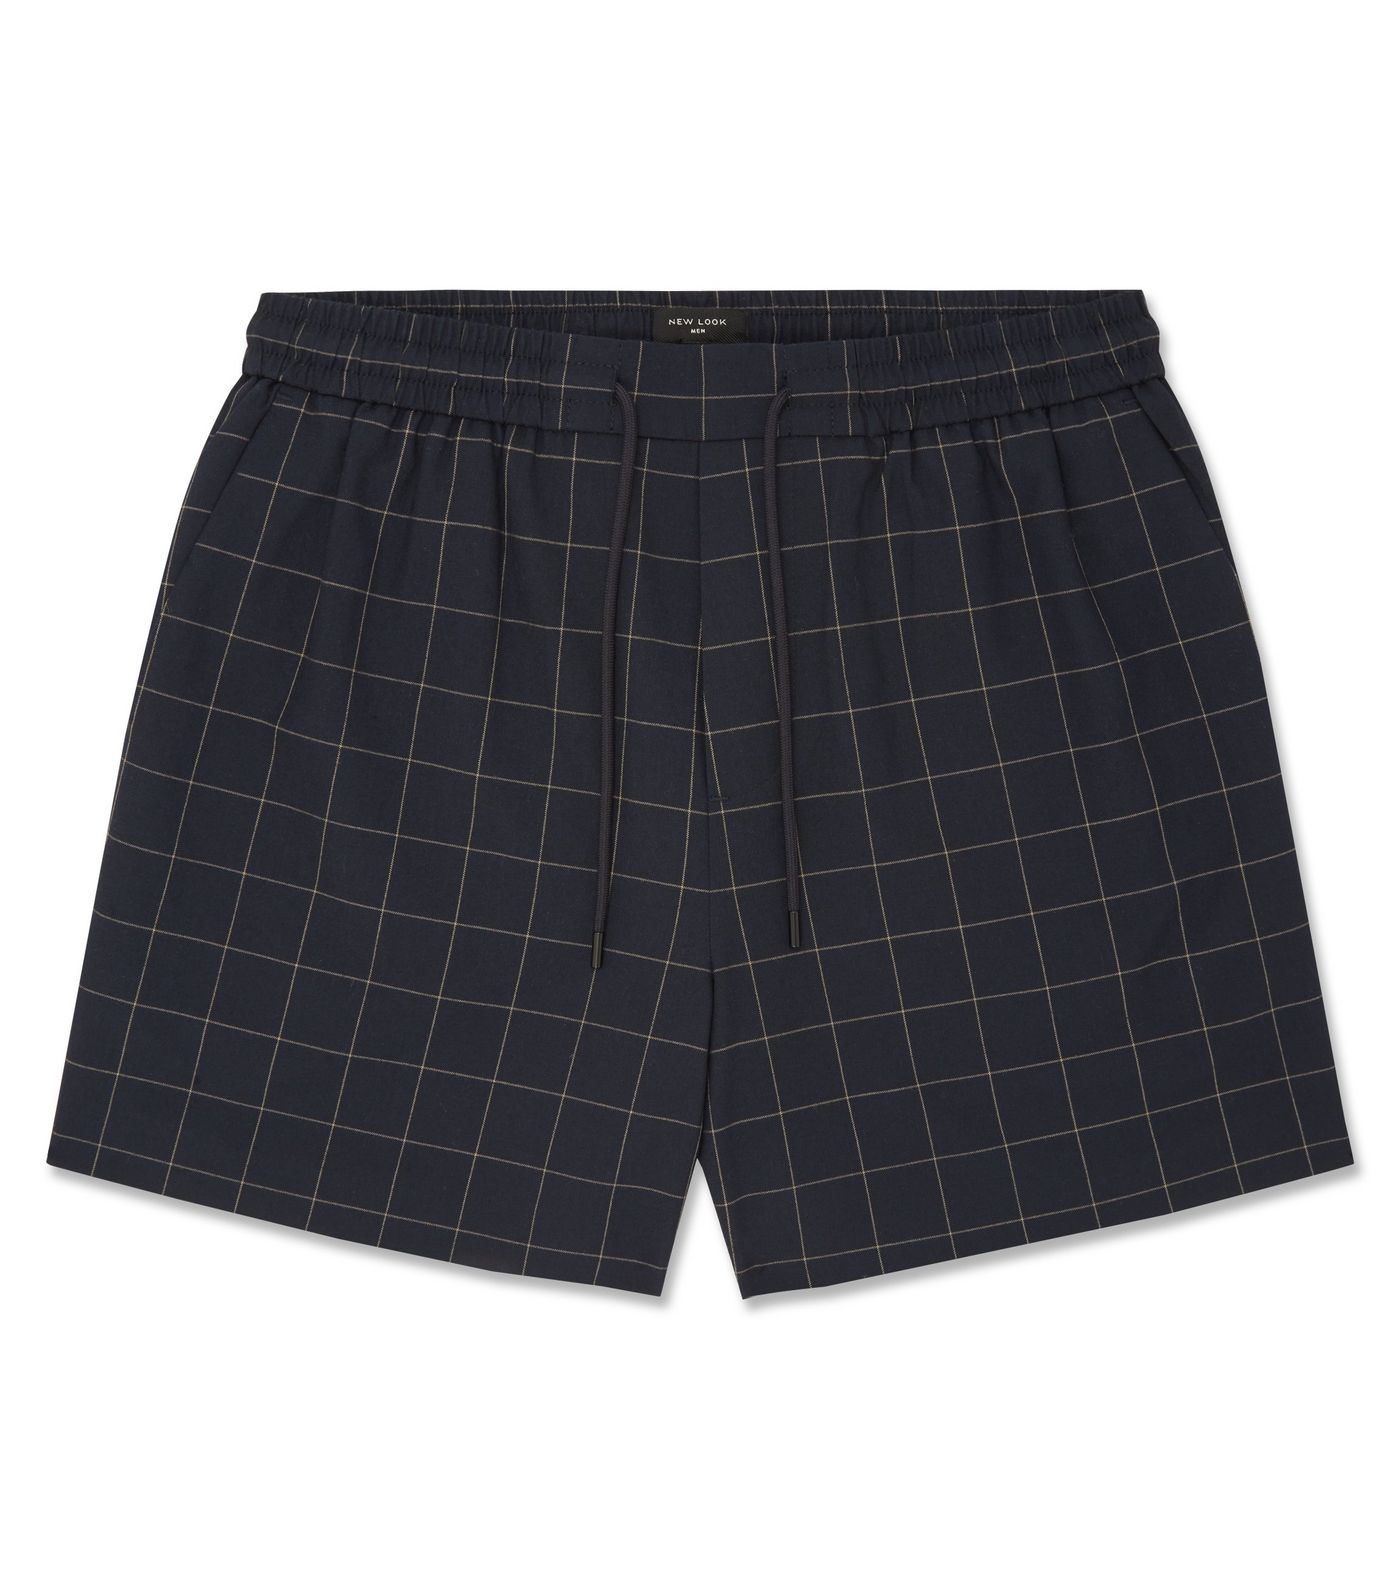 New Look shorts - £24.99 - For those days when only the shortest of shorts will do